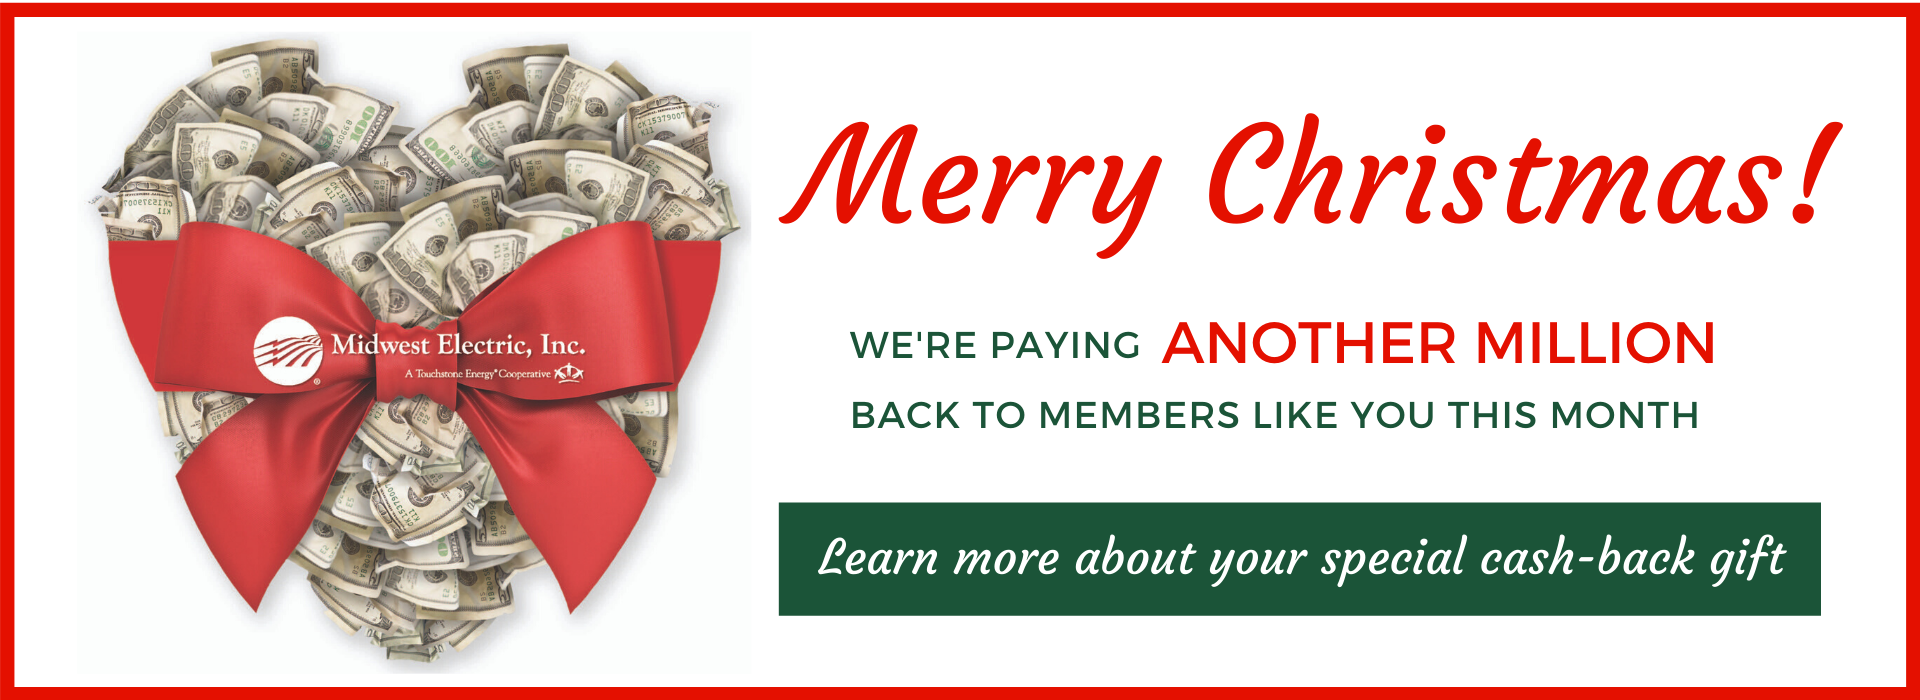 Midwest Electric is paying out another million in patronage cash back to members for Christmas